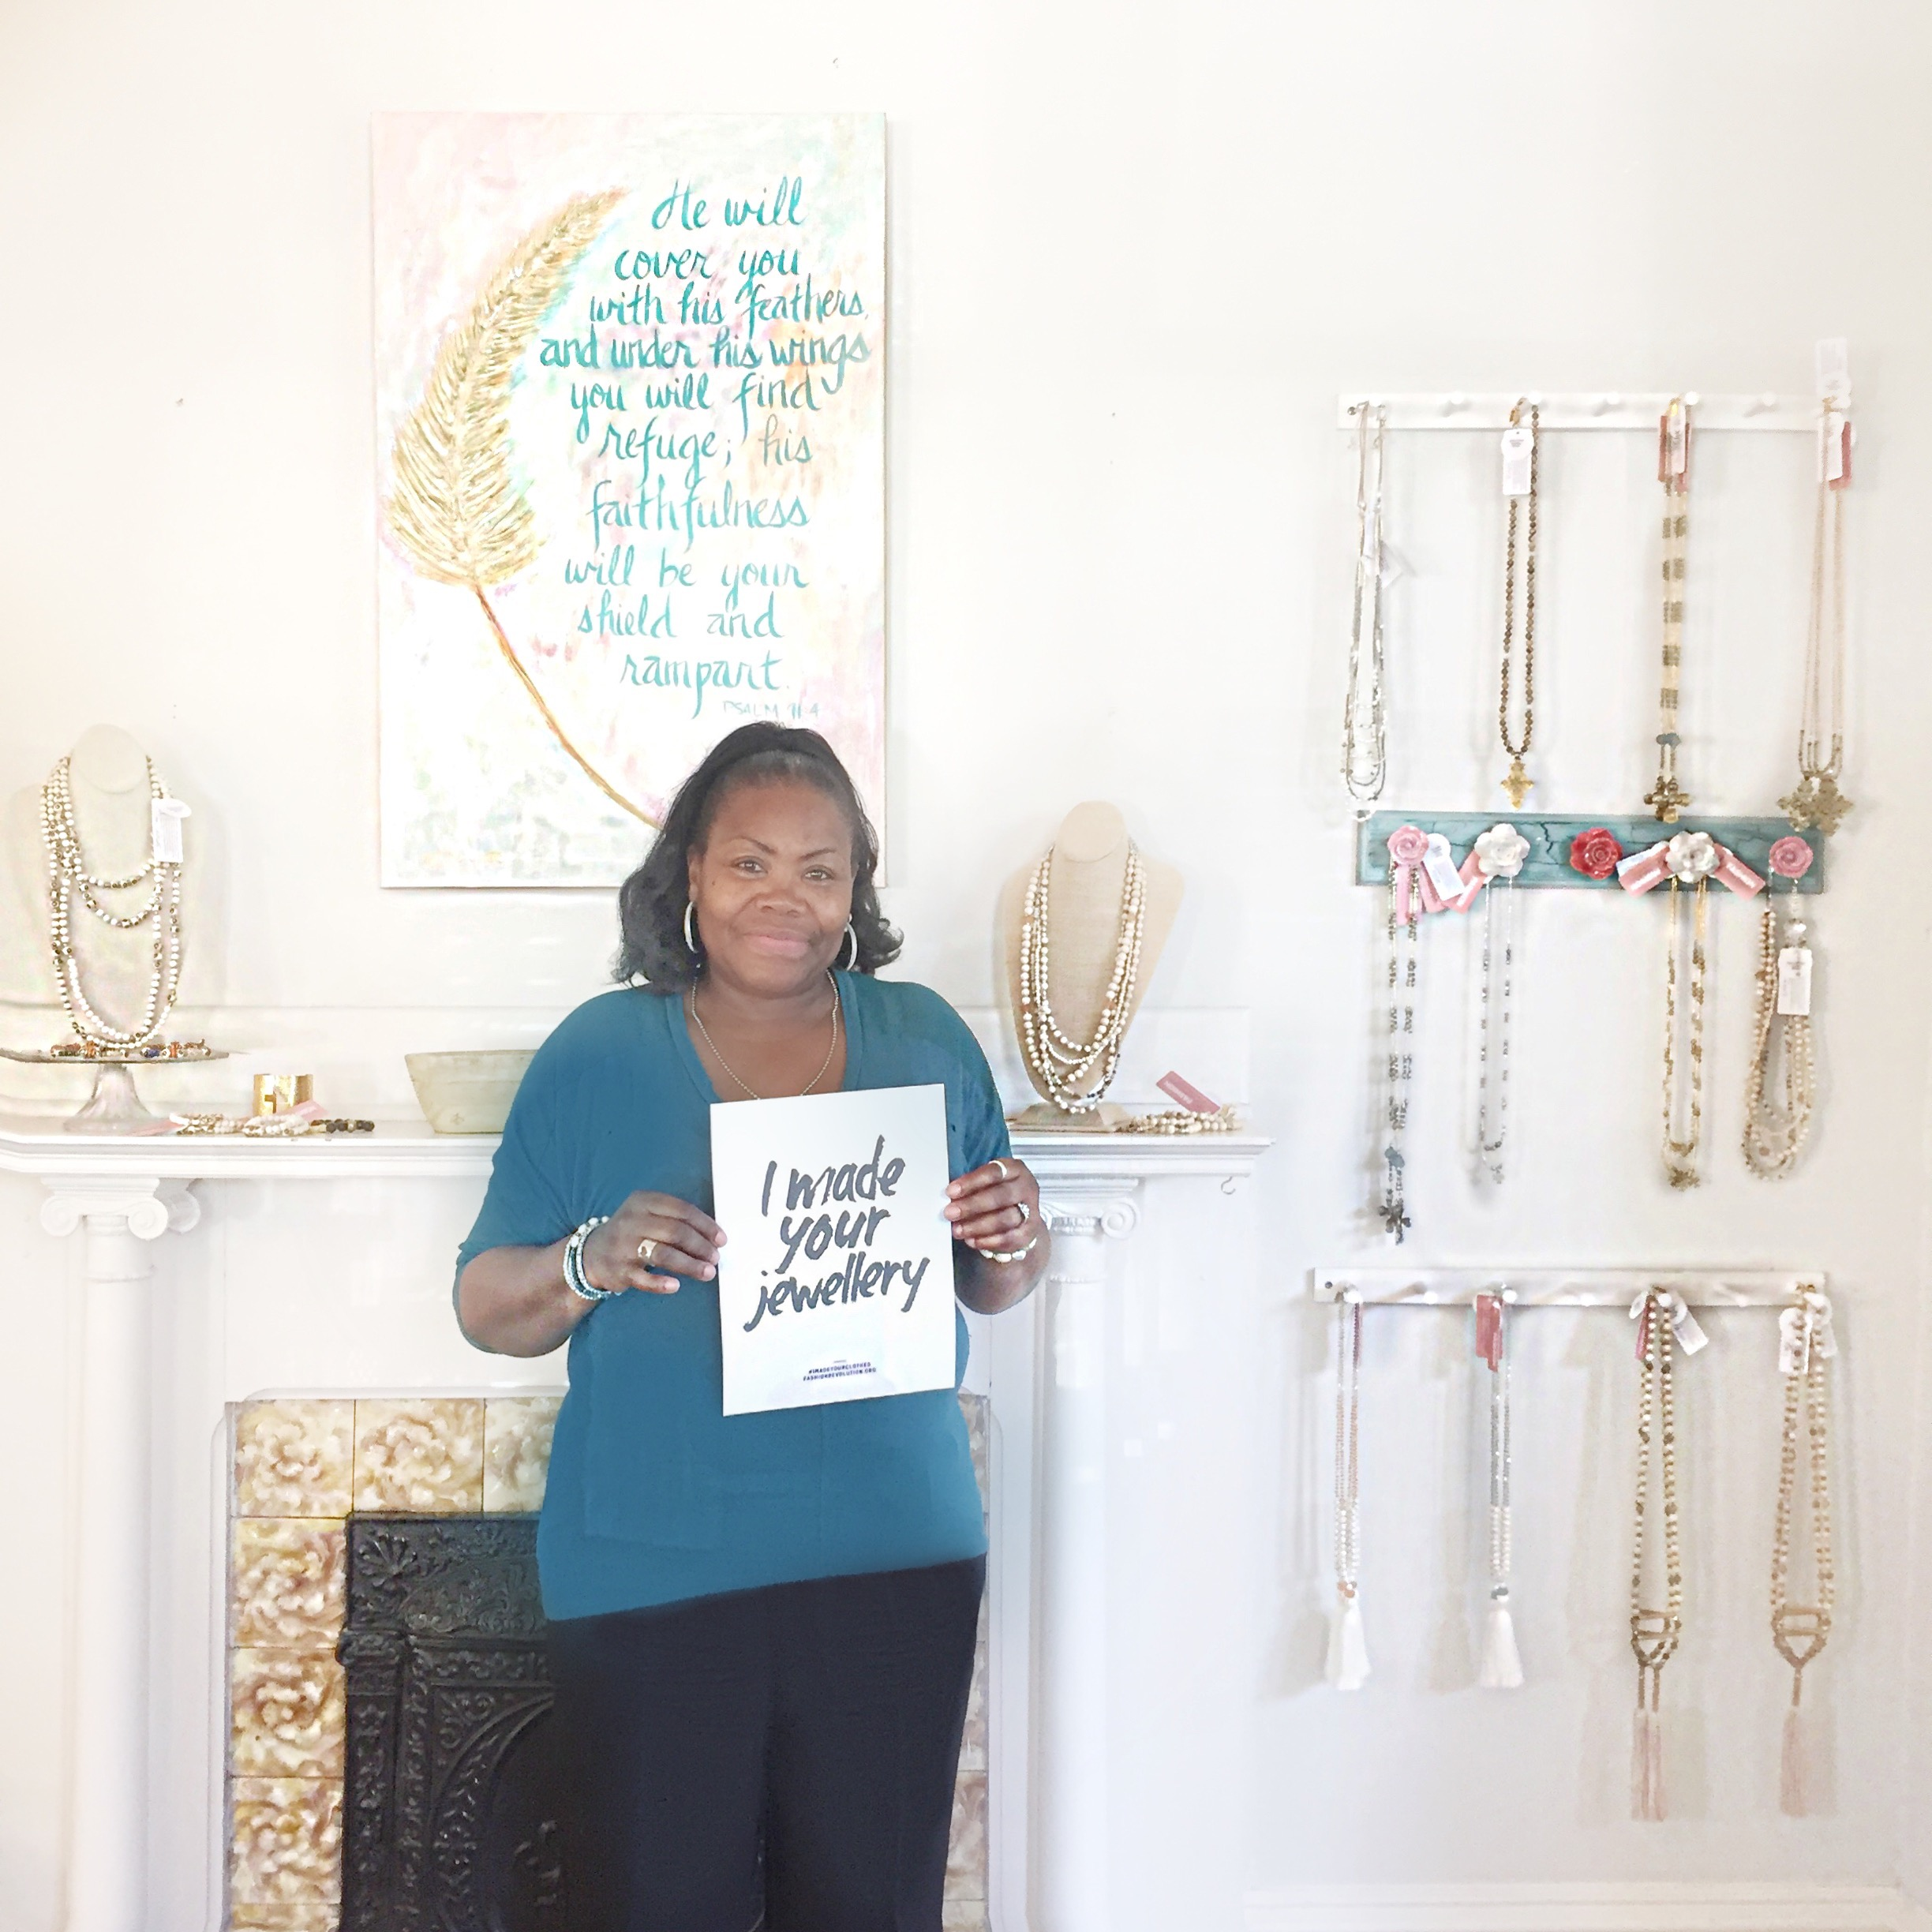 Local artisan partner in North Carolina makes jewelry with ethically sourced beads from around the world (Fashion and Compassion).